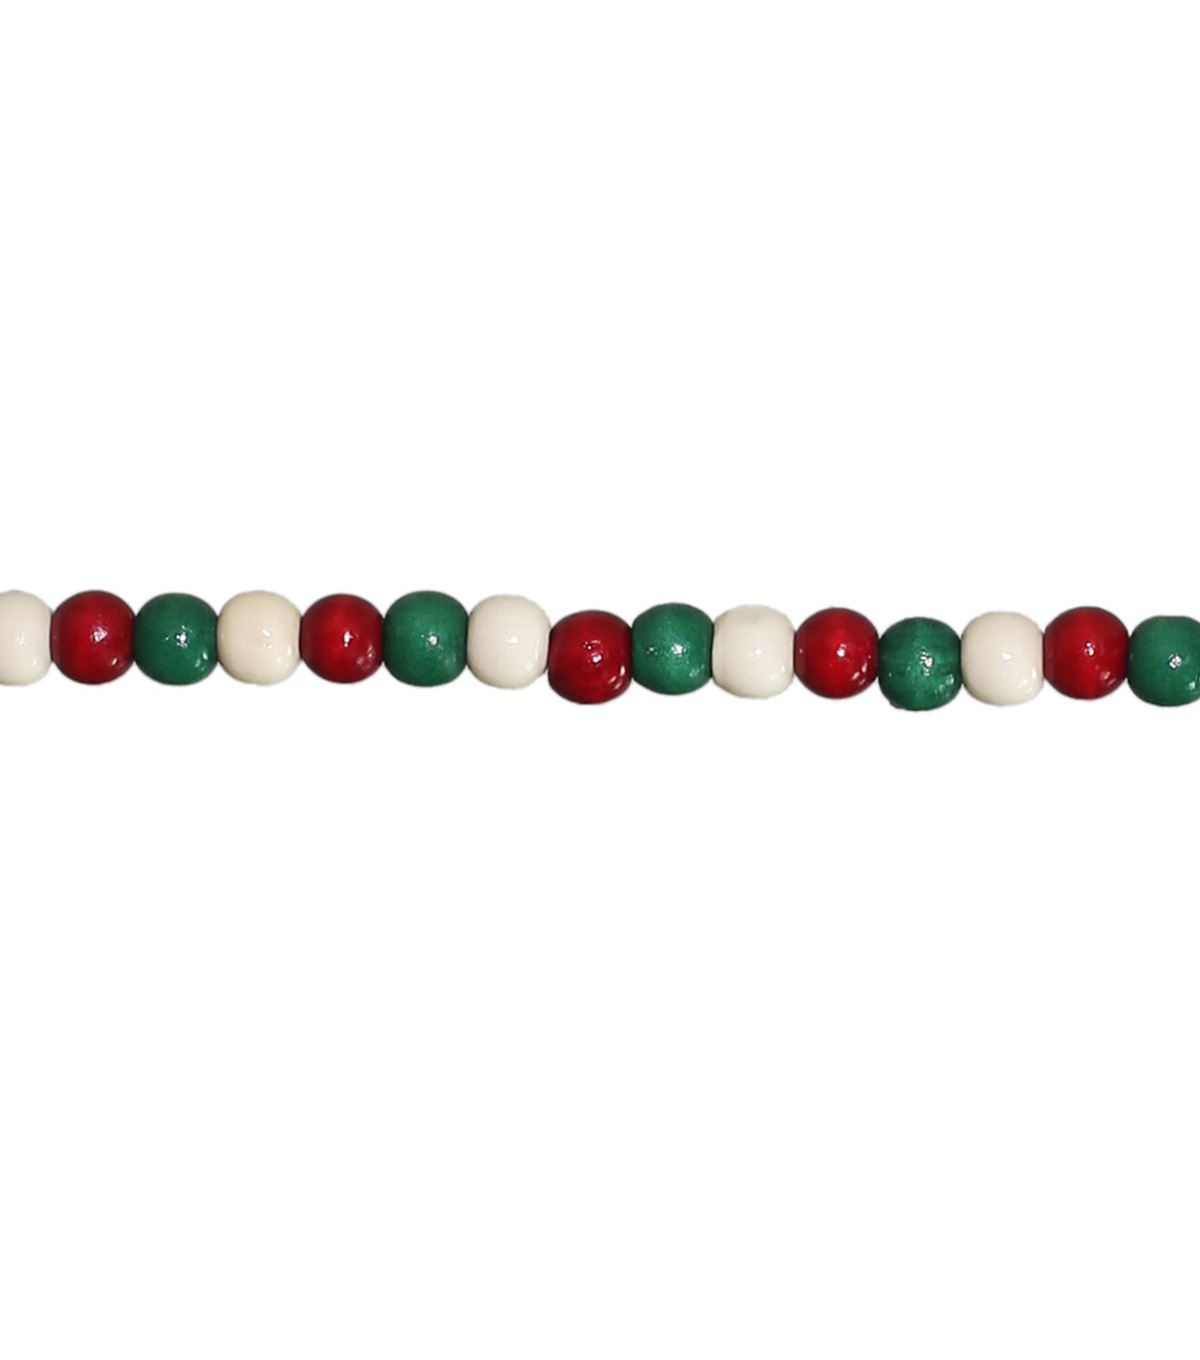 Maker\u0027s Holiday Christmas 8\u0027 Wood Bead Garland-Red, Green & White